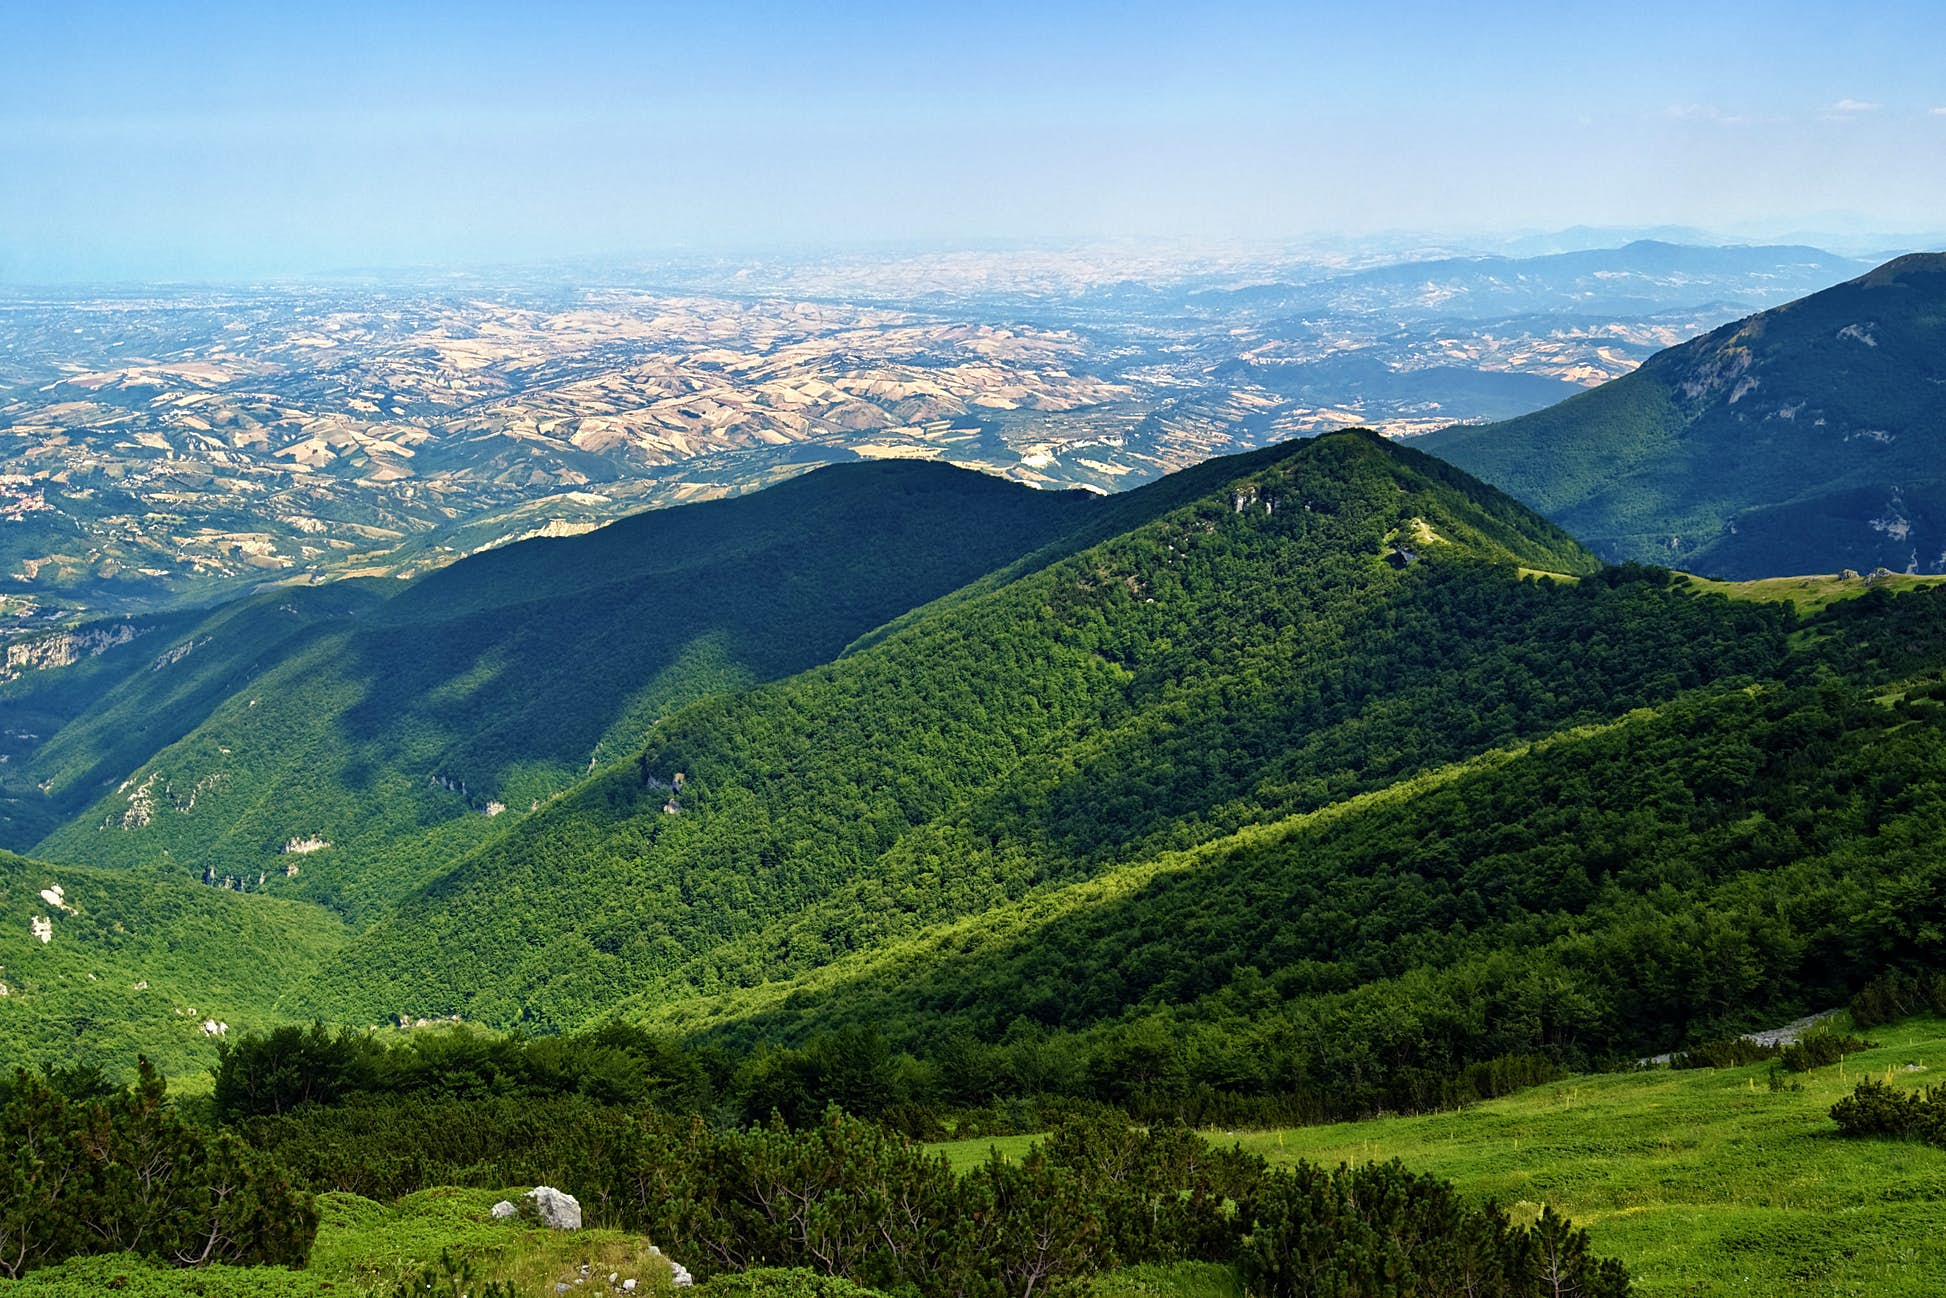 Apennines Mountains (Italy) ©Shoot74/Shutterstock